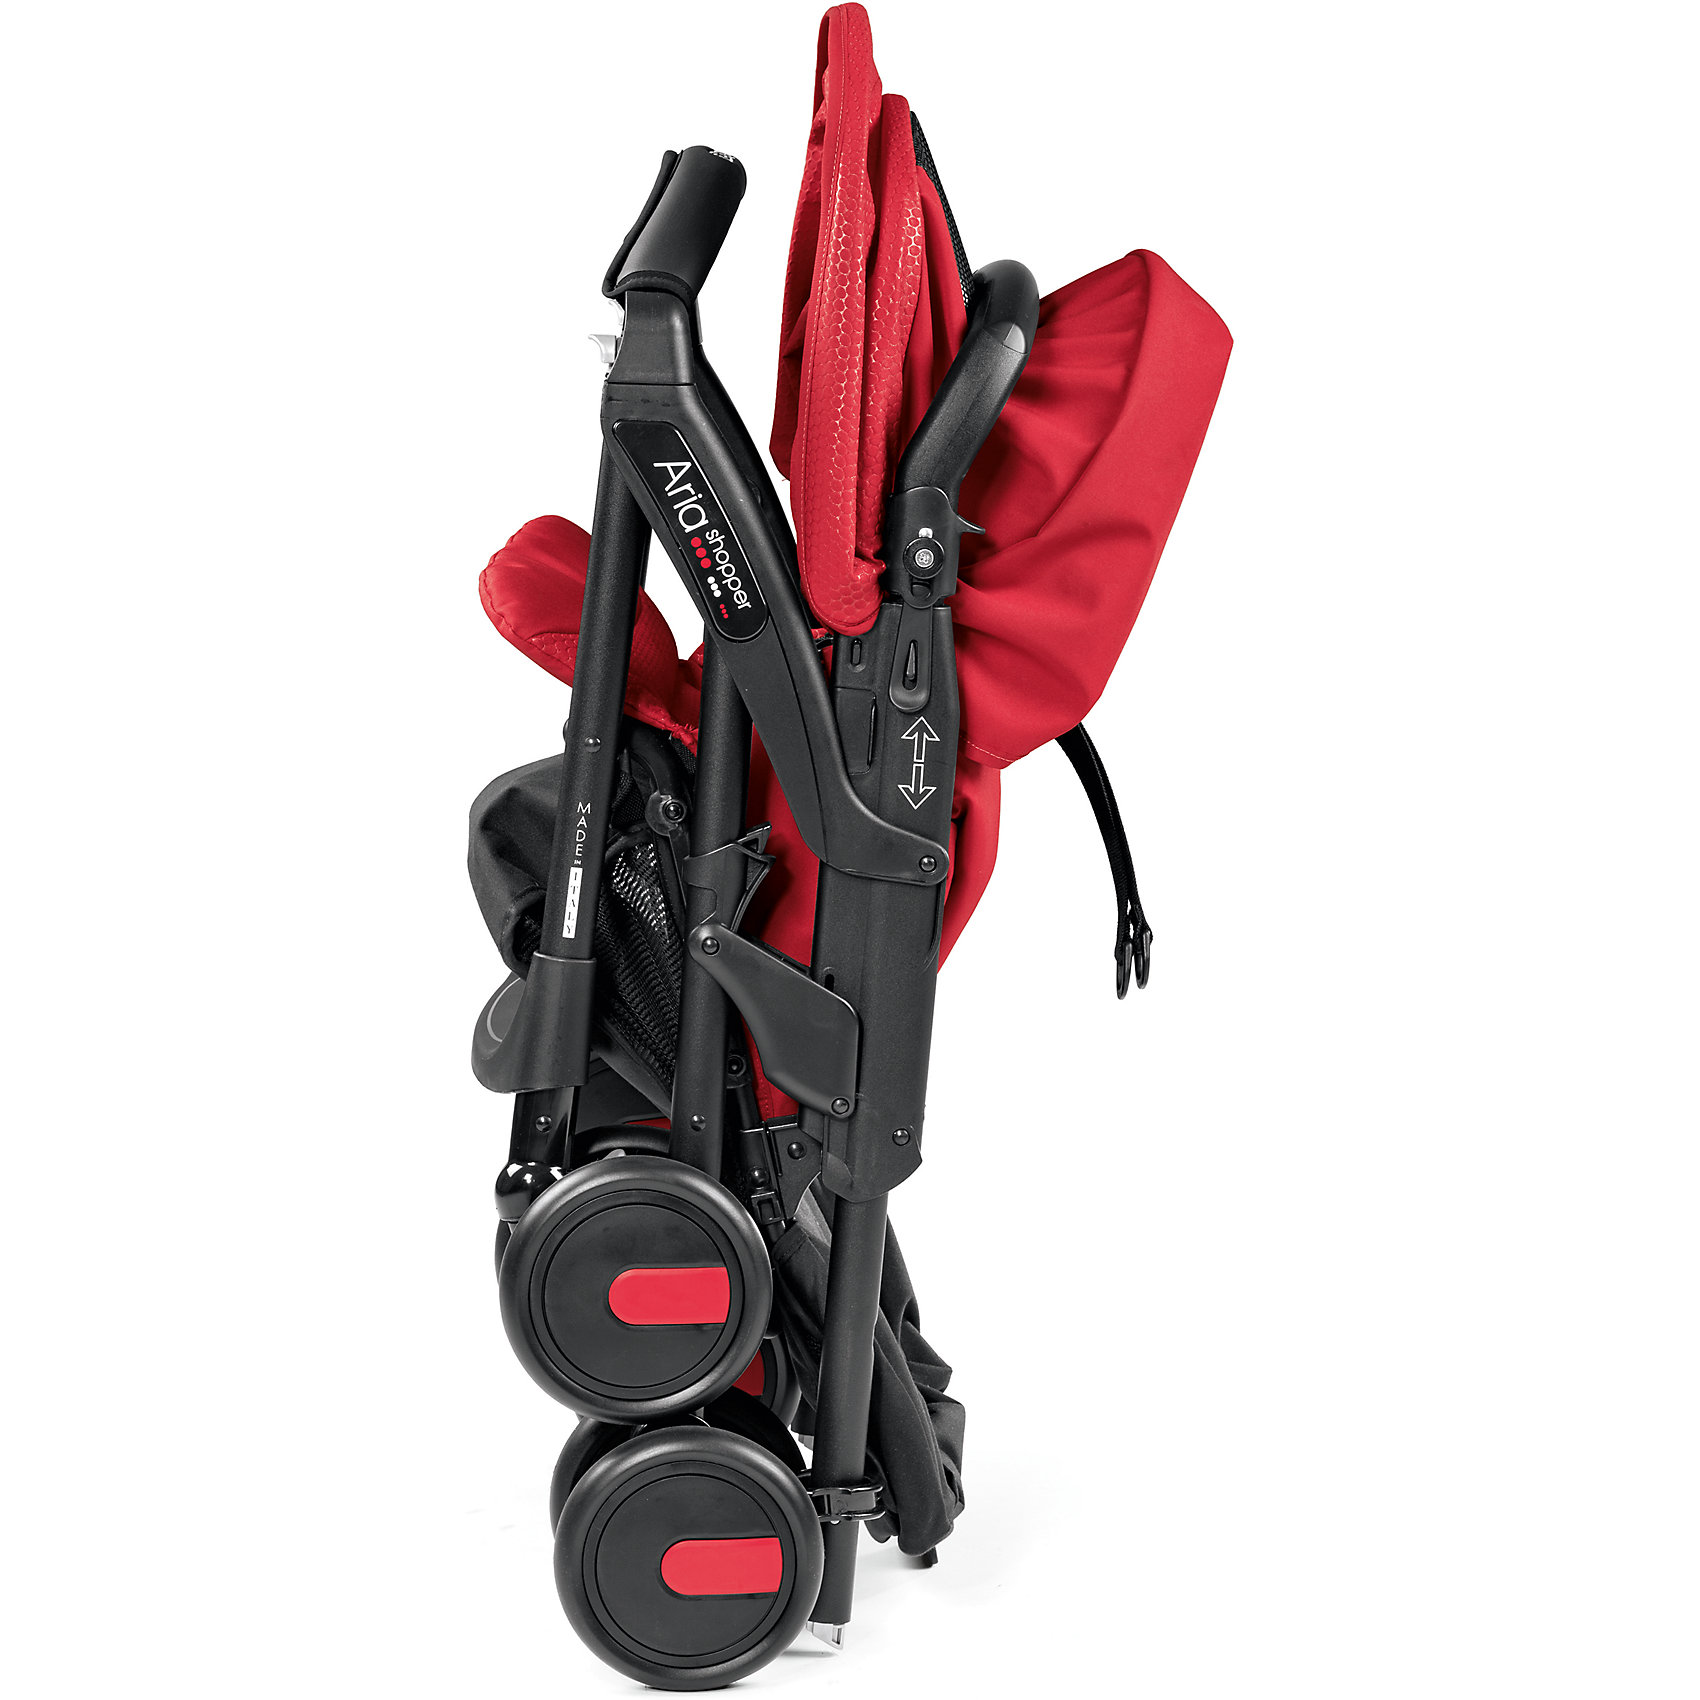 Peg Perego Прогулочная коляска Peg-Perego Aria Shopper, Mod Red